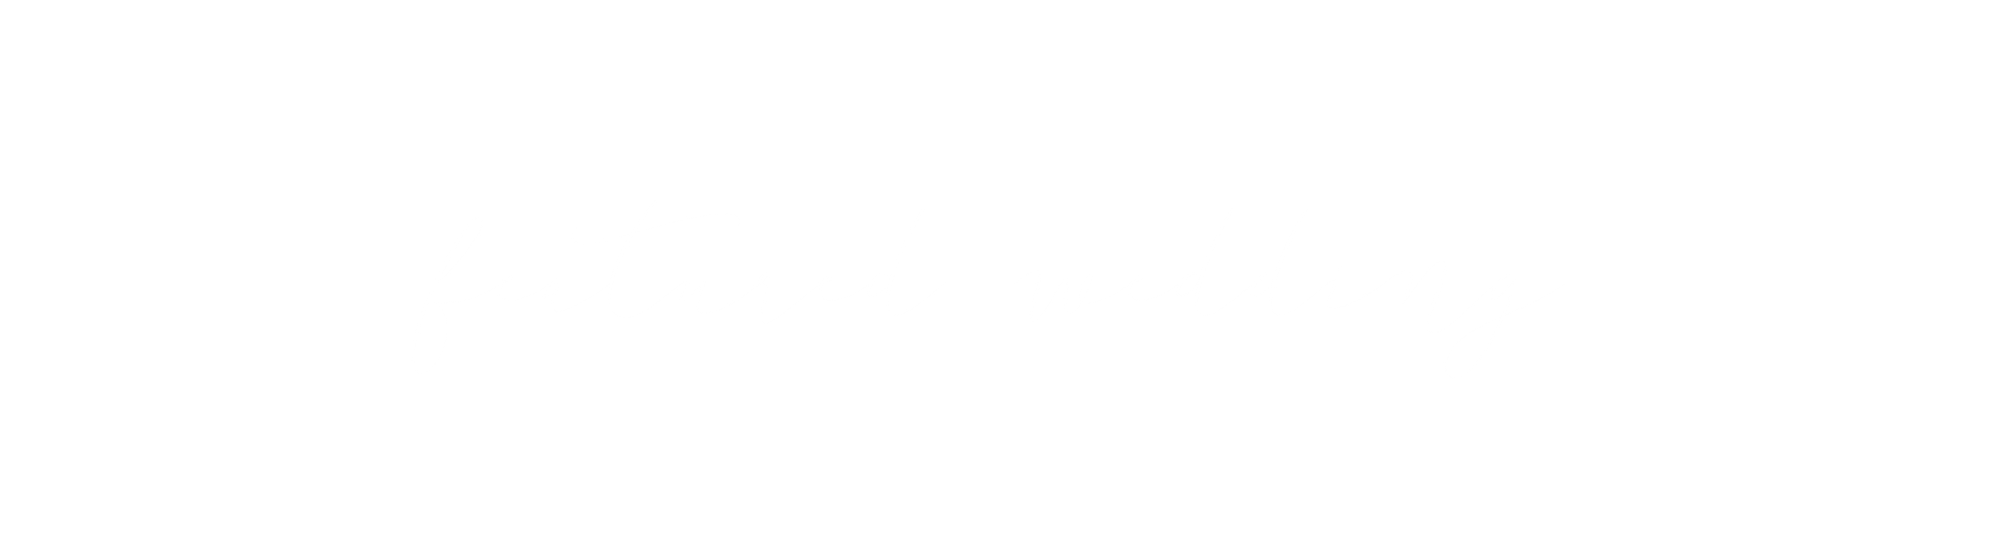 featured wedding.png